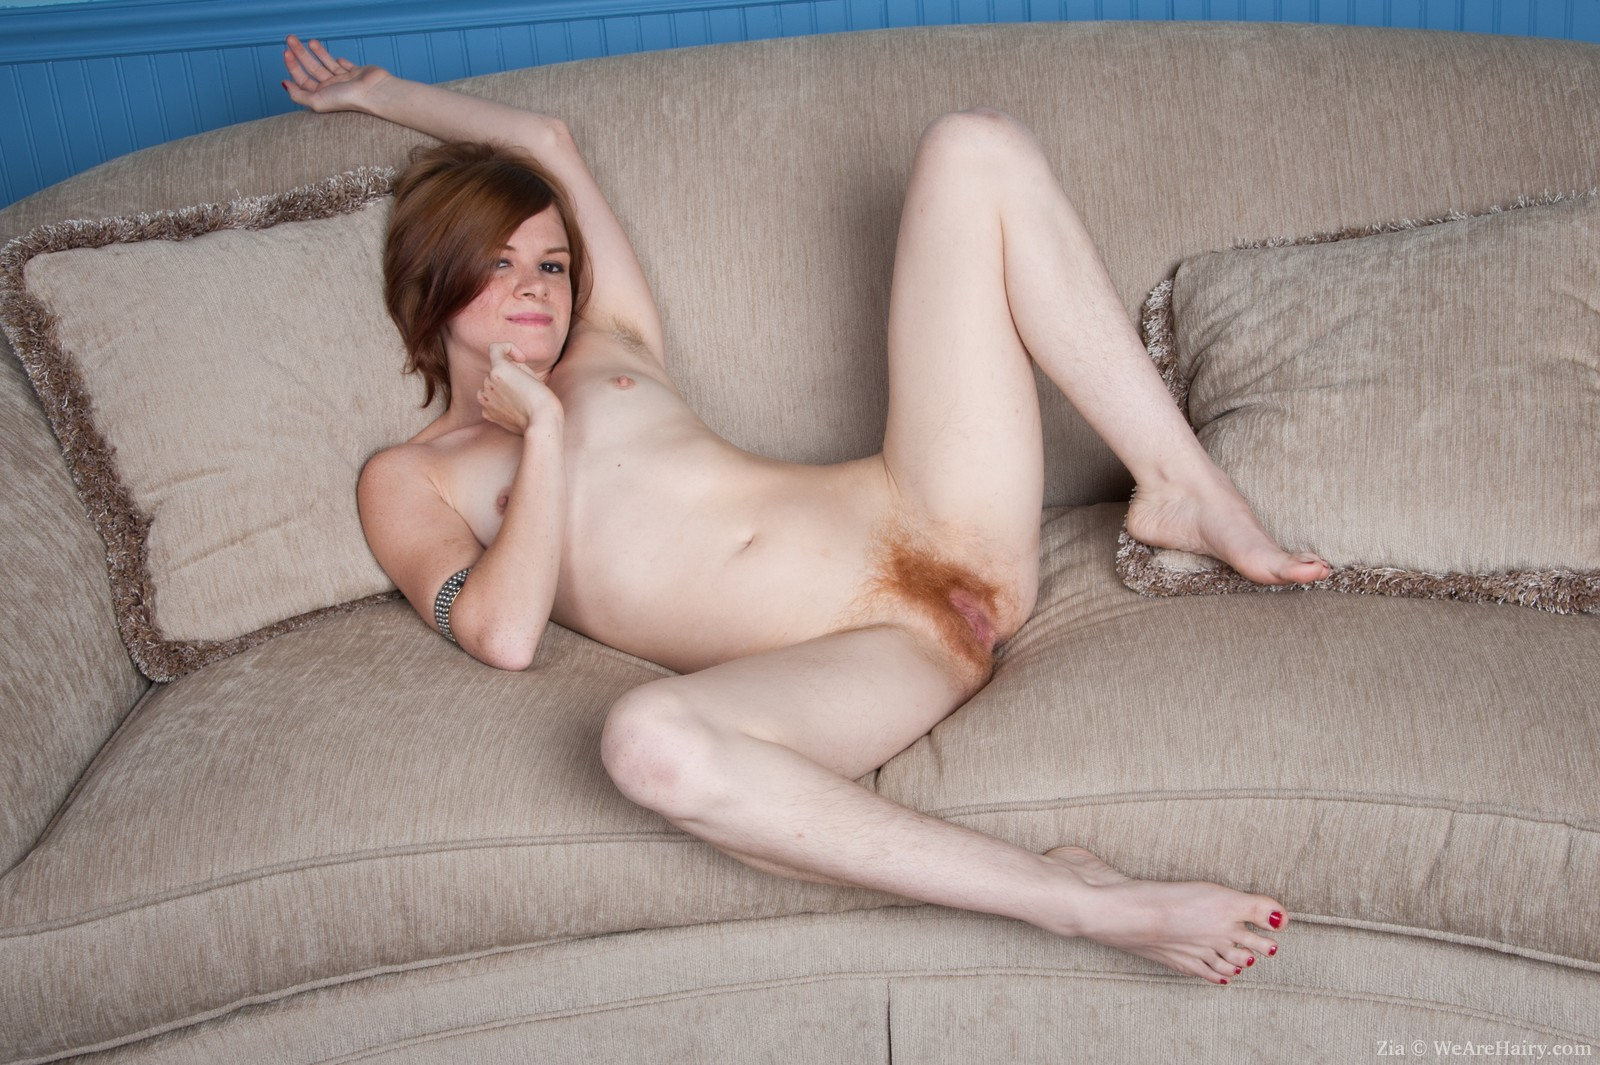 naked amateur natural girls american